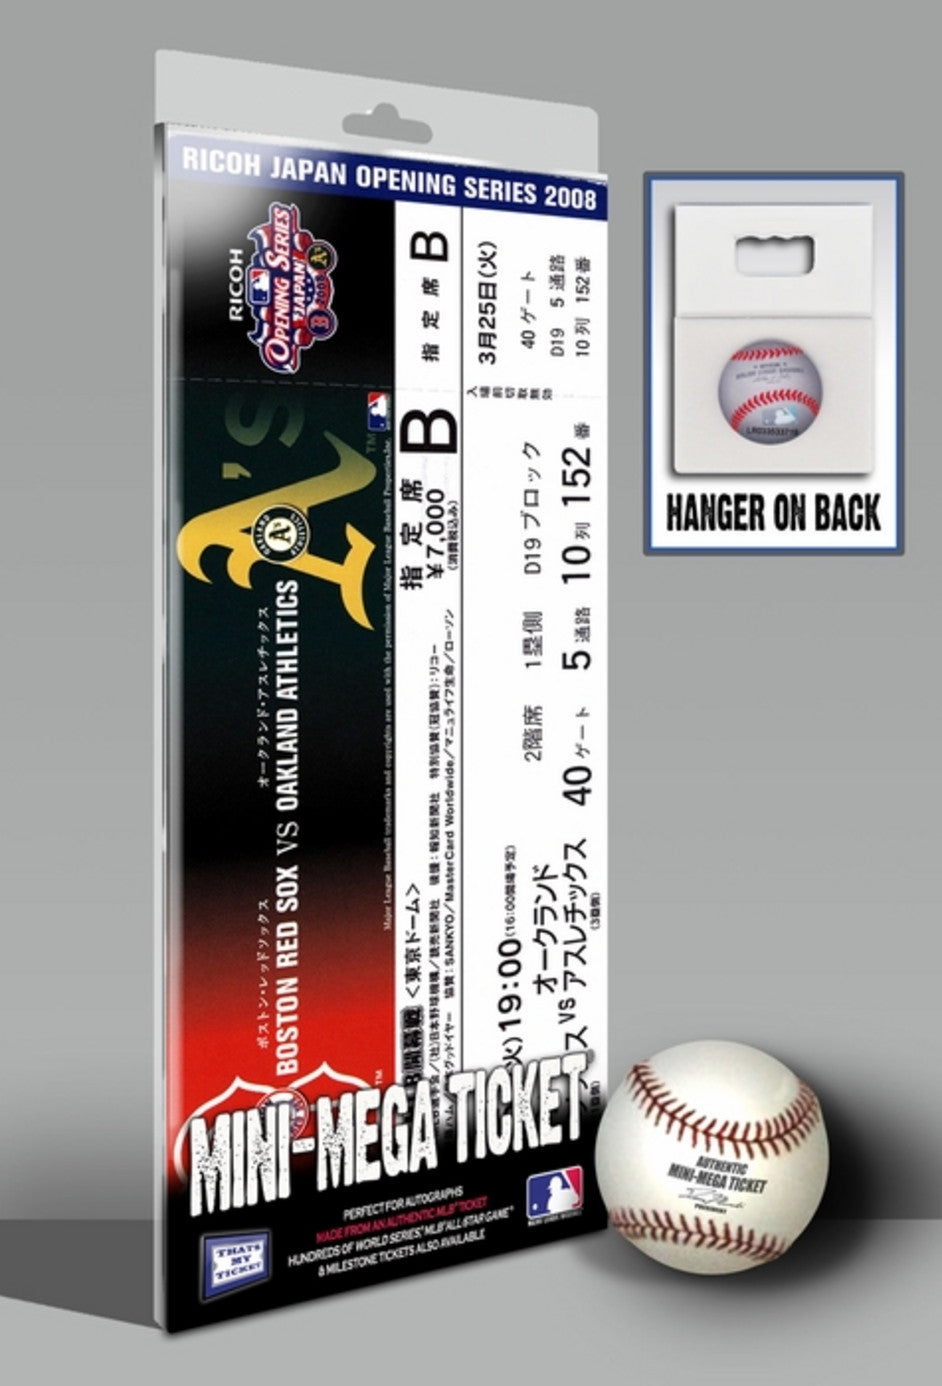 2008 Opening Day Japan Mini Mega Ticket Boston Red Sox Vs Oakland As